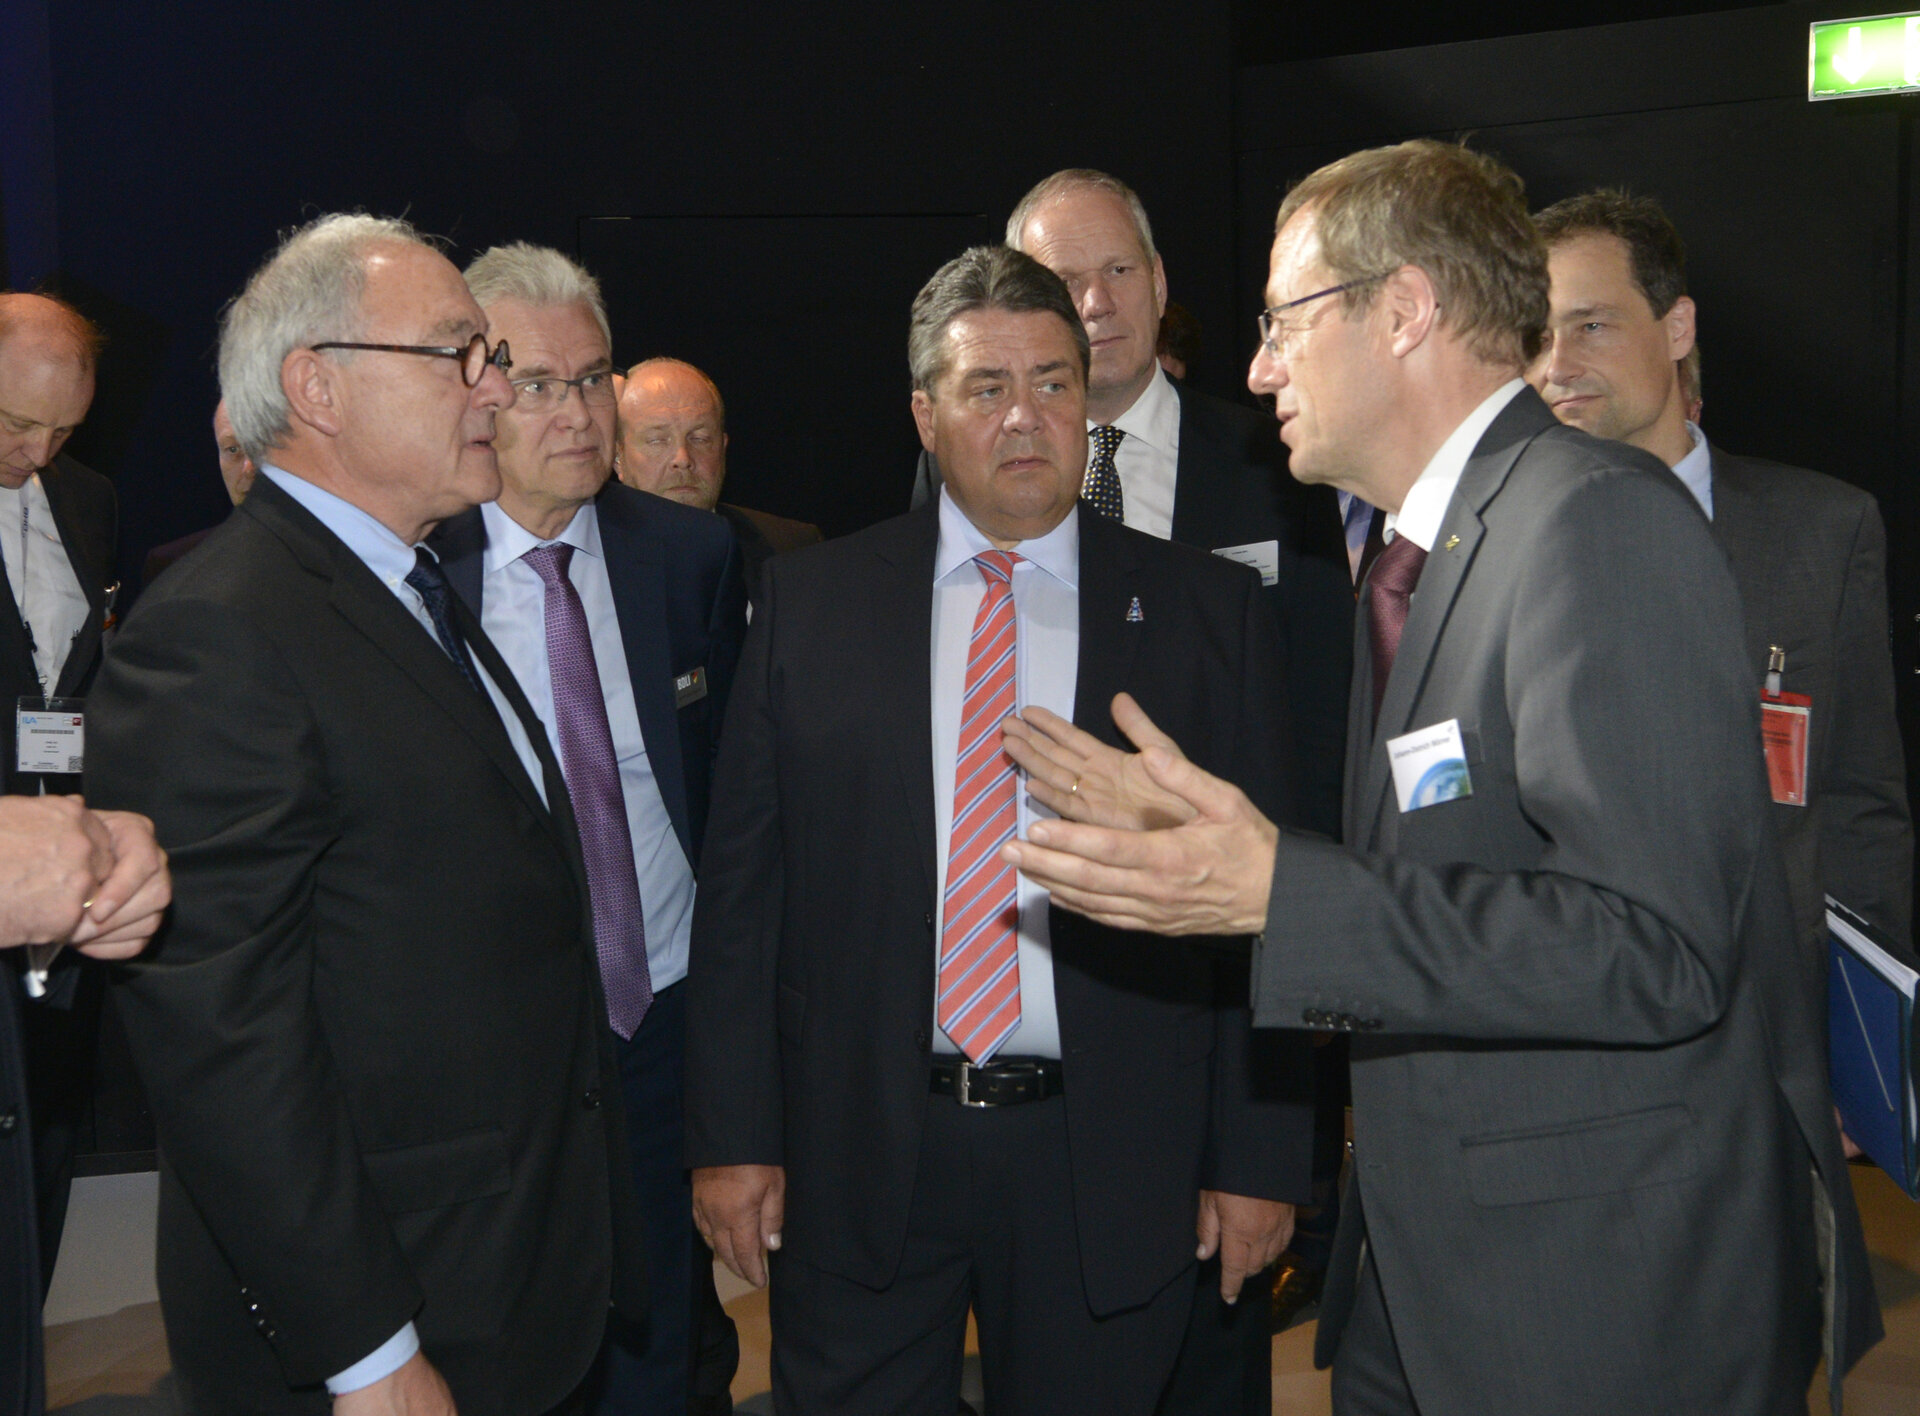 Sigmar Gabriel visits the 'Space for Earth' space pavilion at ILA